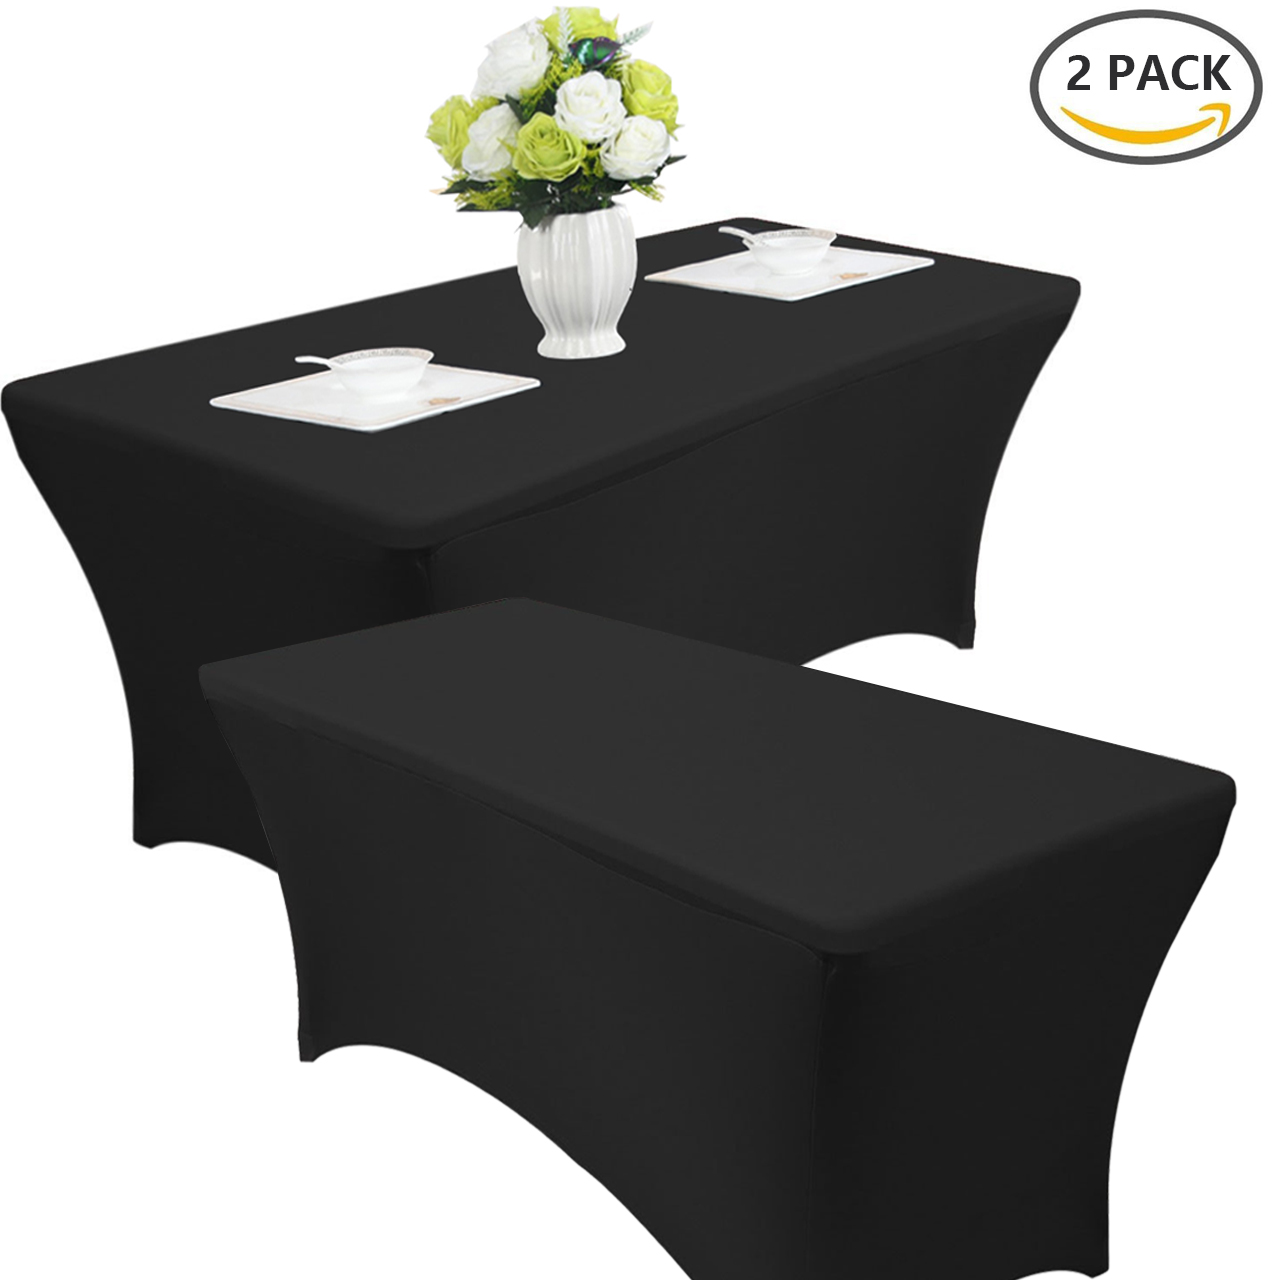 6ft Spandex Fitted Stretch Tablecloth Rectangular Table Cover Elastic Protector